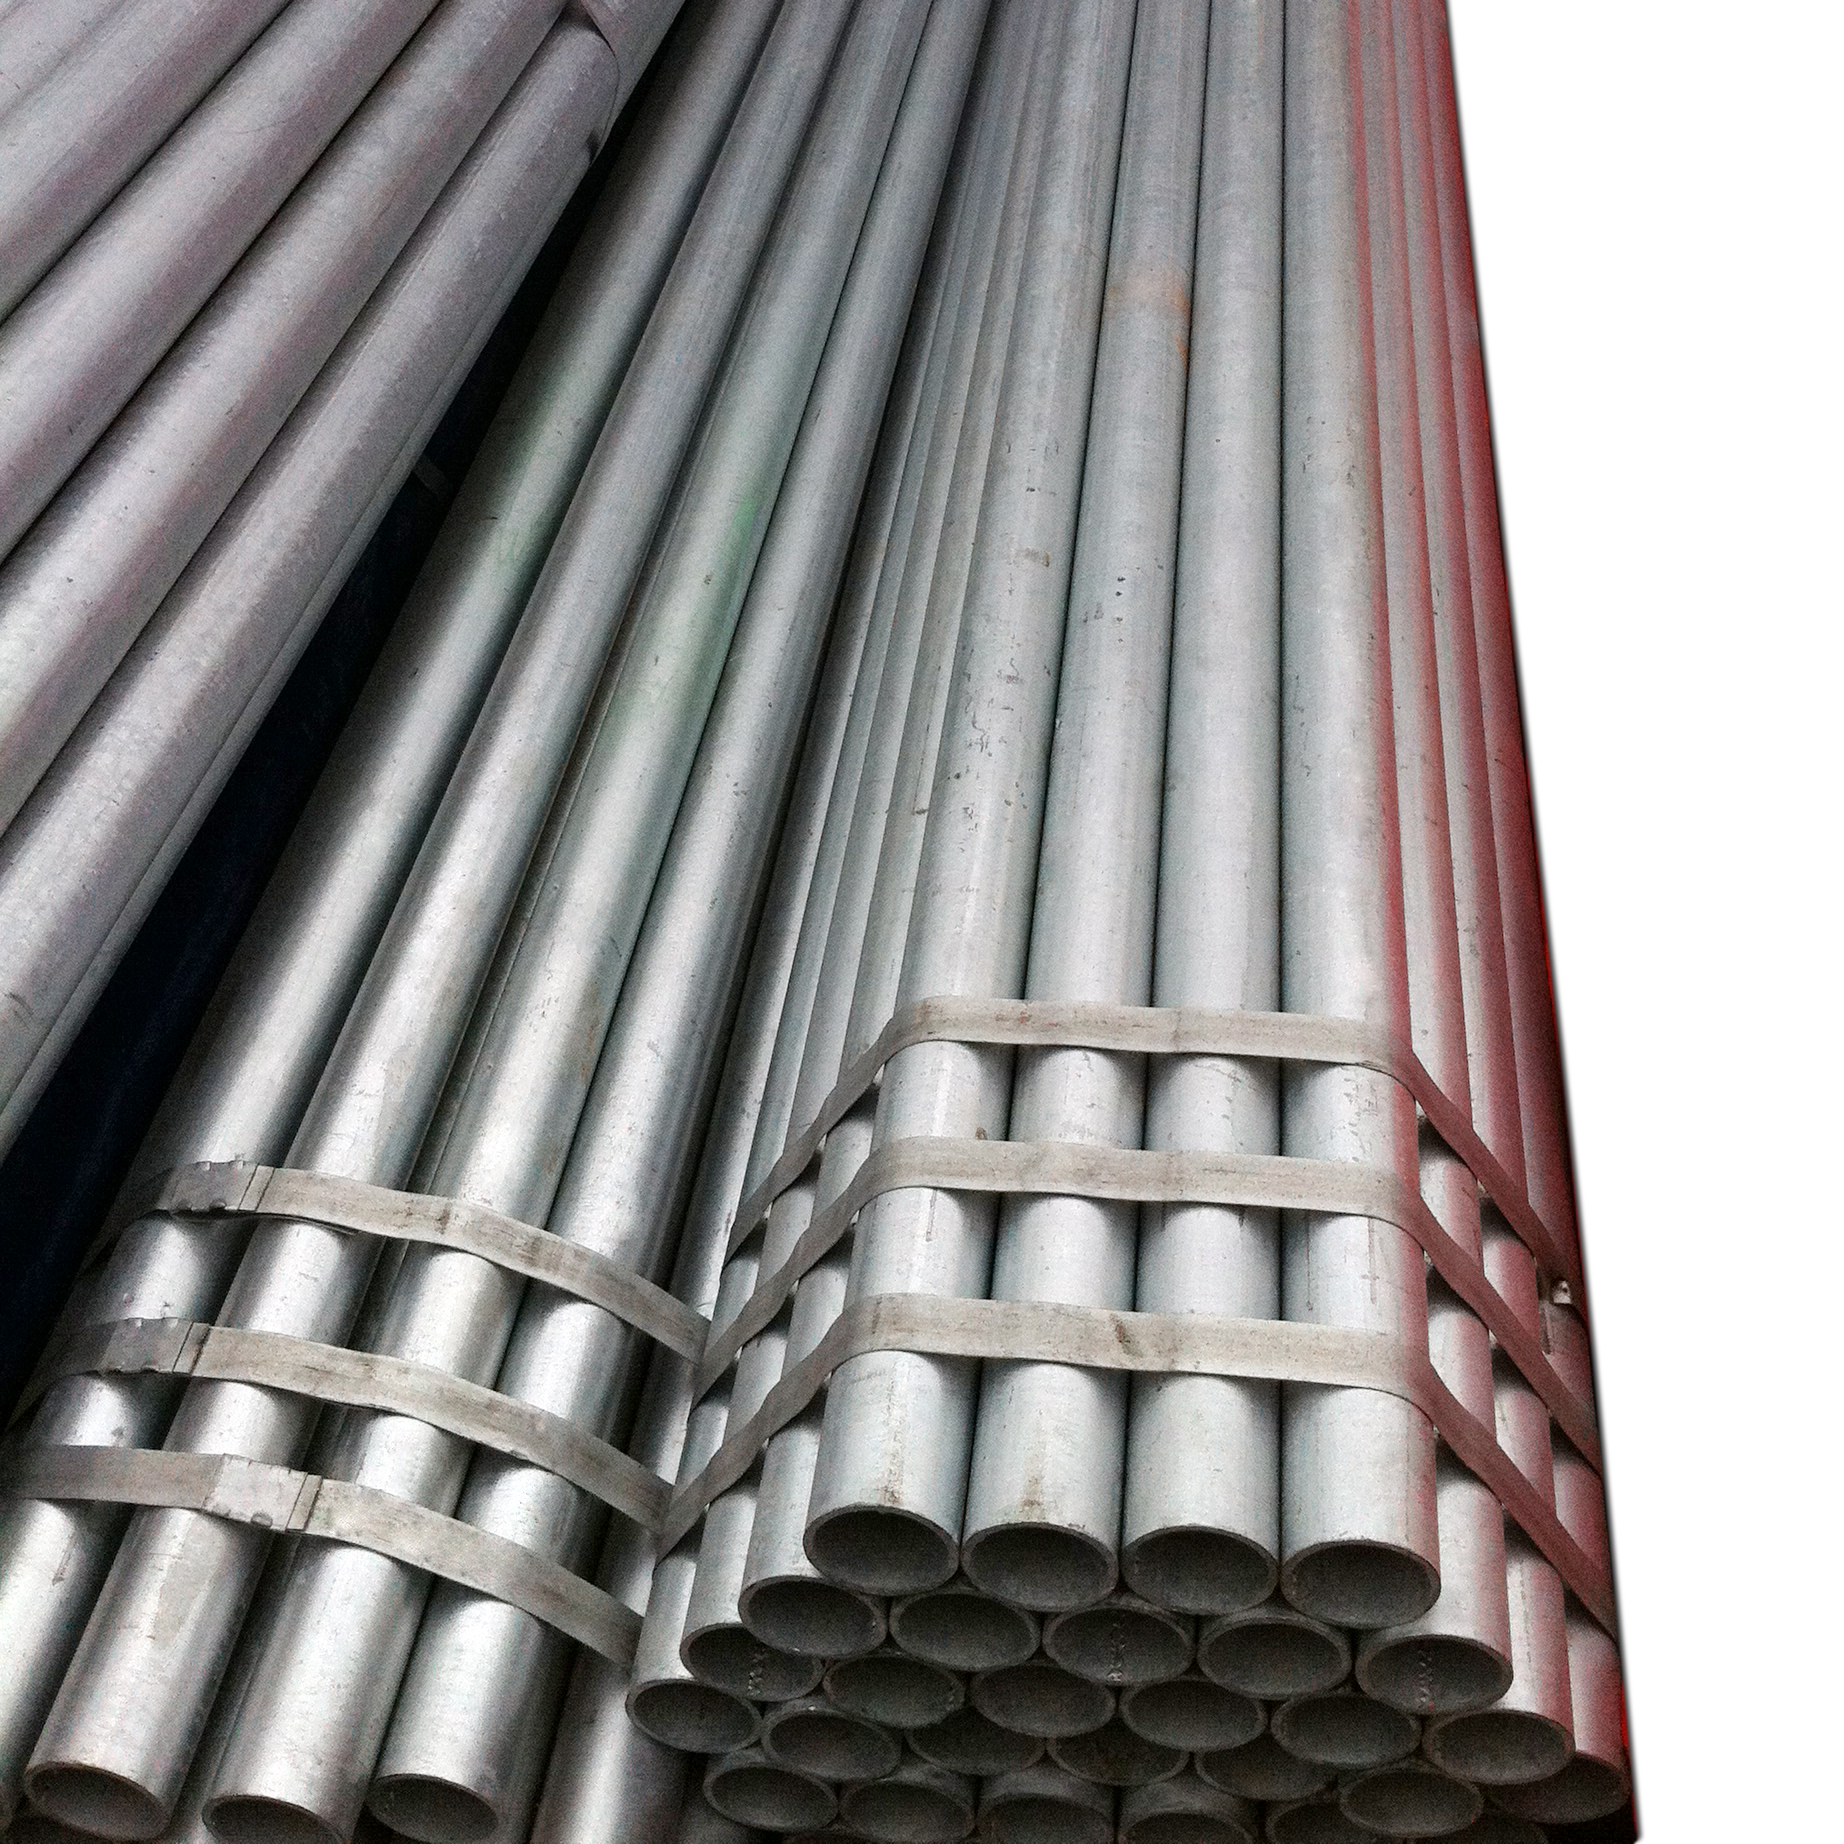 1 5 Inch Galvanized Round Tubing For Greenhouse Zs Steel